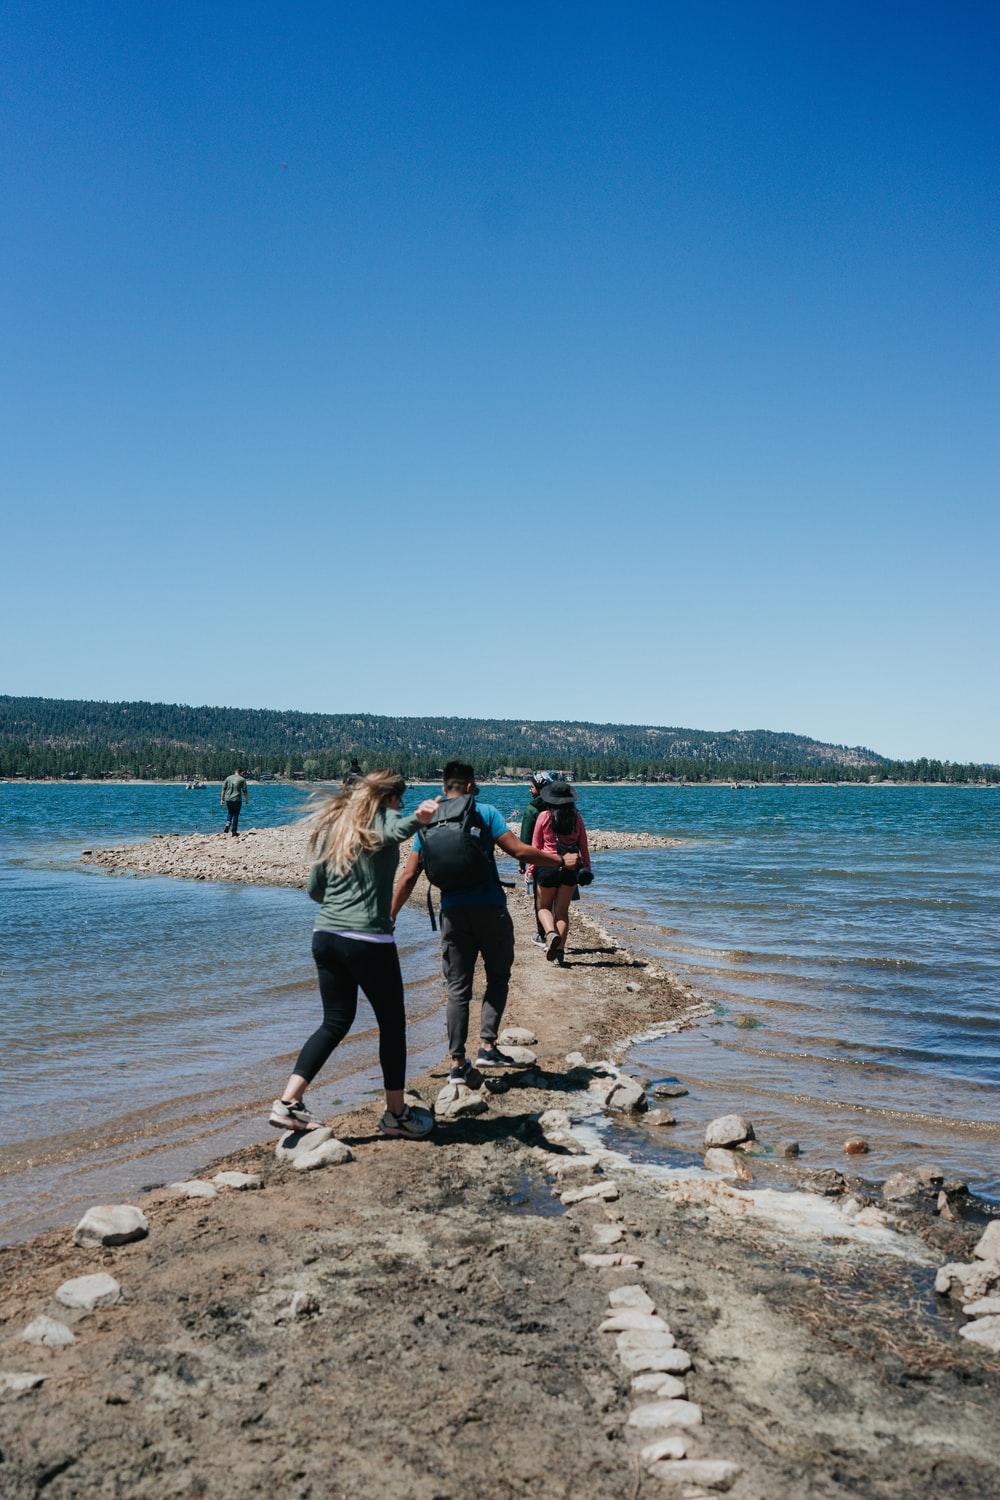 people standing on brown rock near body of water during daytime